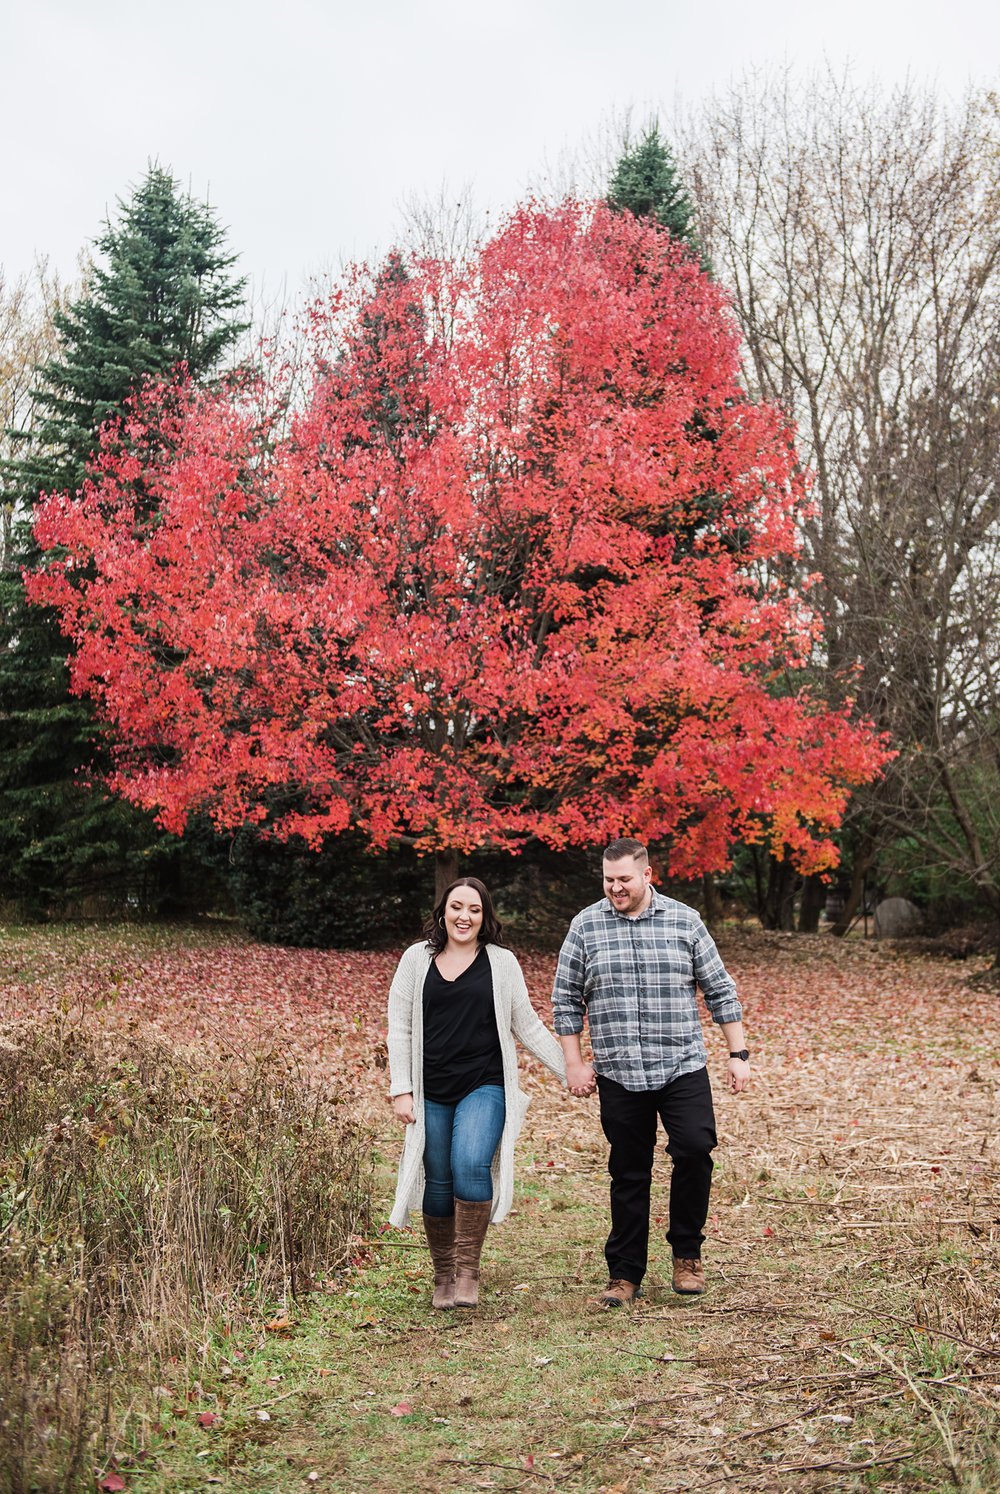 Tinker_Nature_Park_Rochester_Engagement_Session_JILL_STUDIO_Rochester_NY_Photographer_DSC_0437.jpg